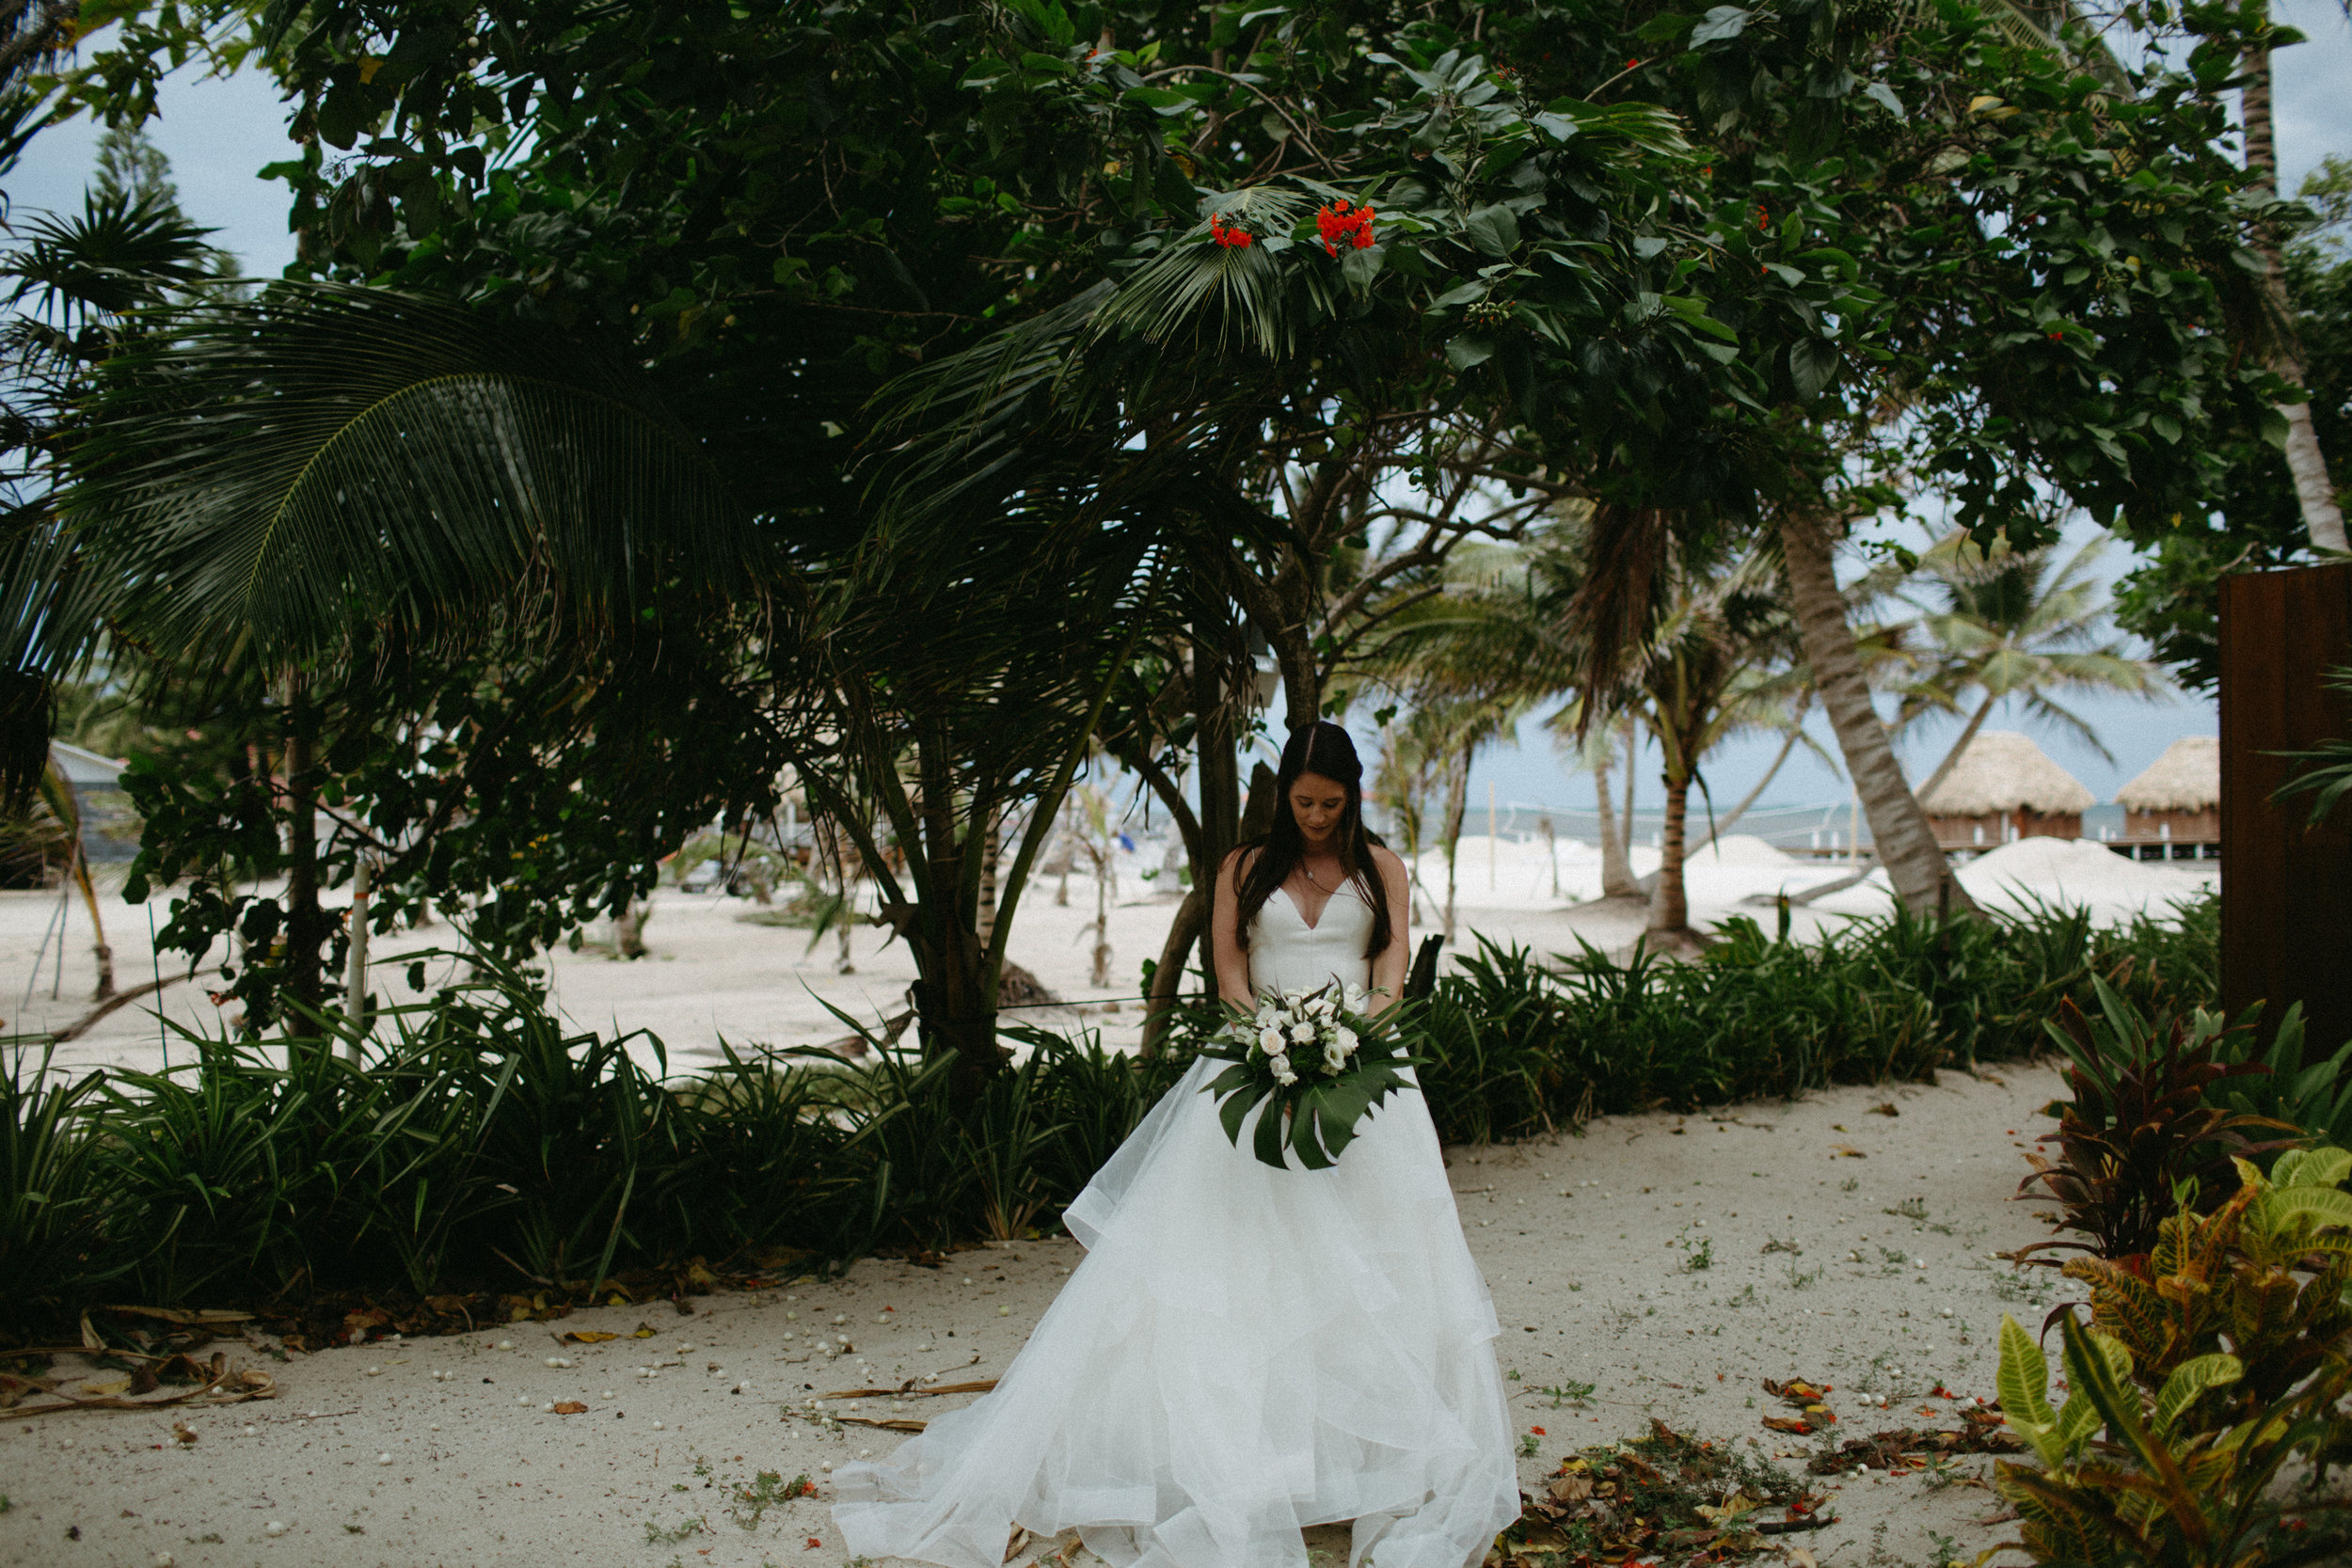 san-pescador-belize-wedding-christinemariephoto-j-k-56.jpg